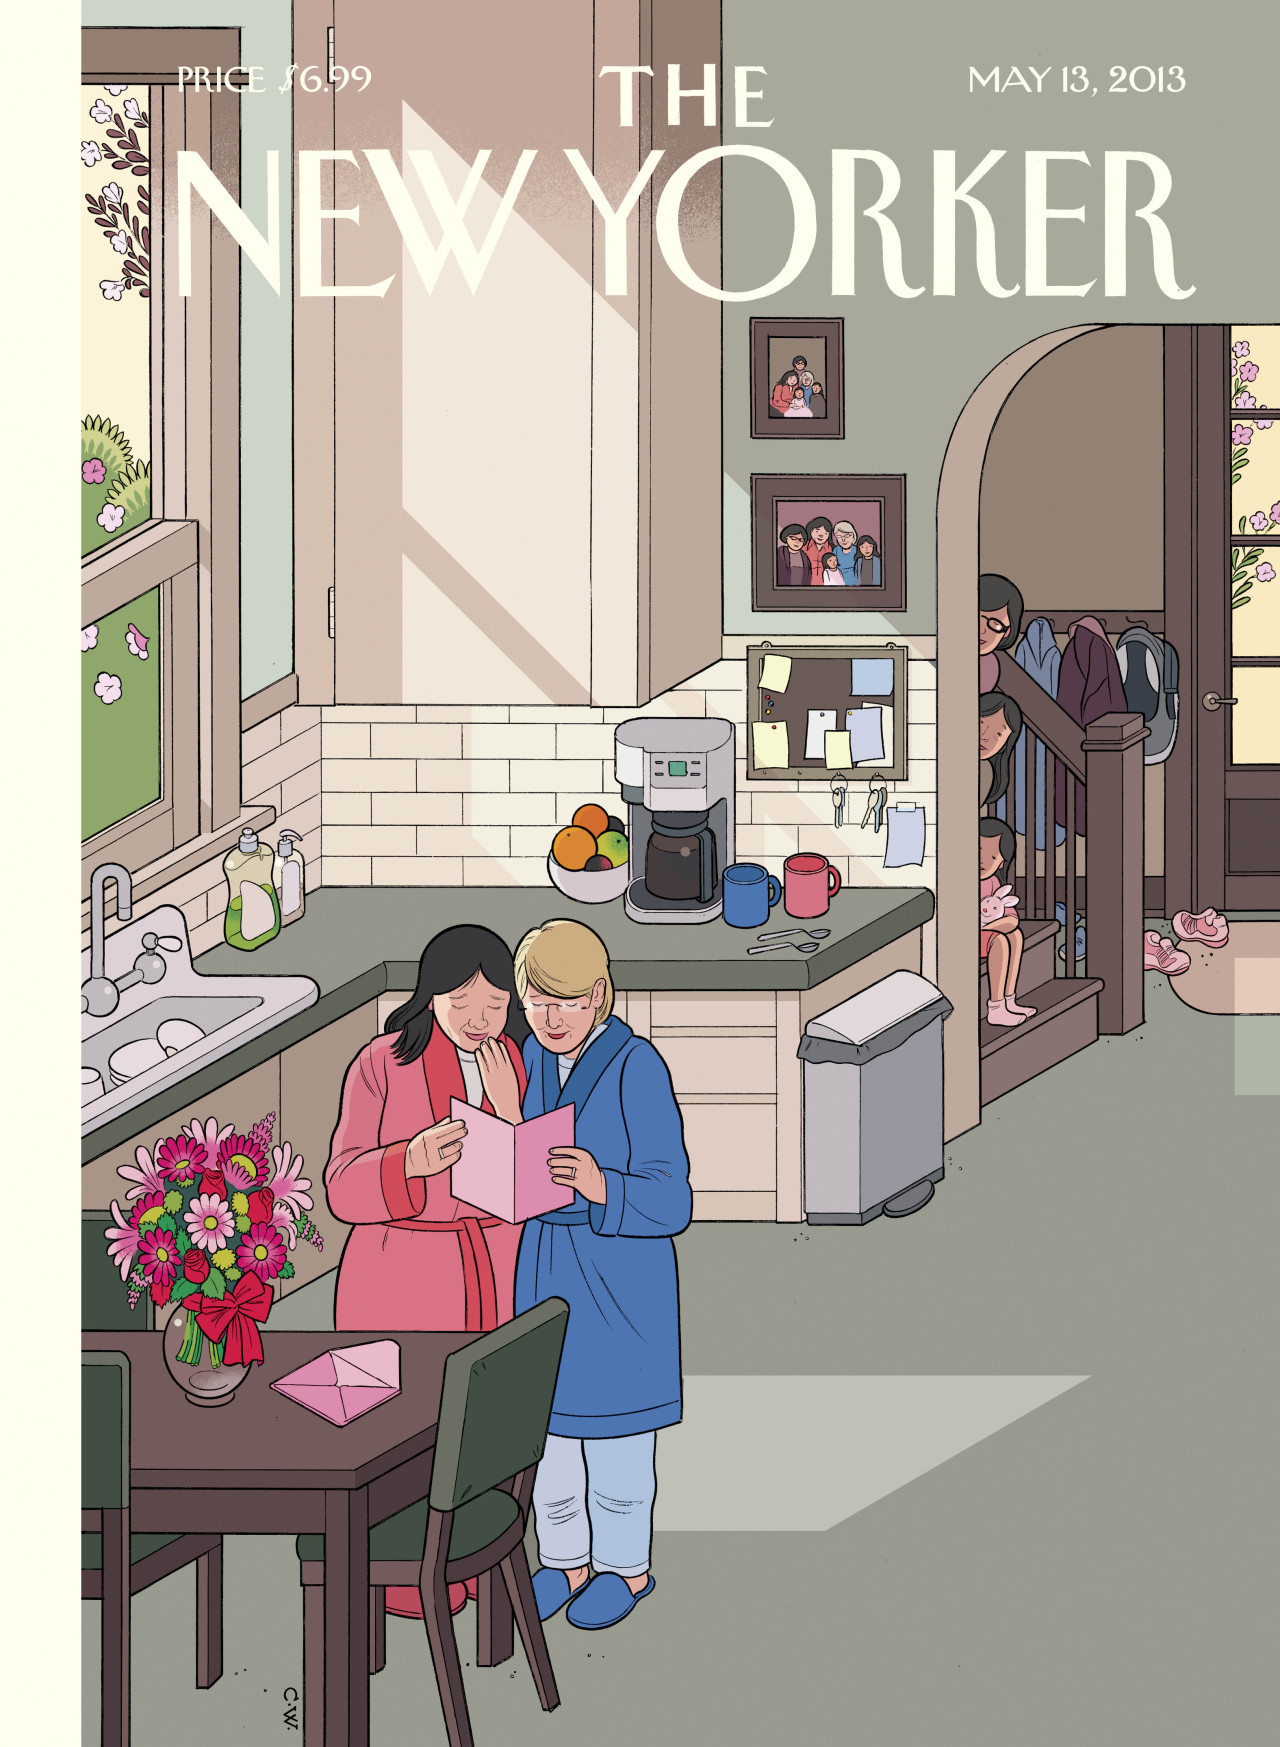 "newyorker:                In the spirit of openheartedness and what life is really all about, I'll go so far as to say that the fear of others may mask some deep-seated desire to understand, and maybe even to love. Because really, what is there to be afraid of? Few people today don't know—or have in their families—at least one loving couple who are raising children, same-sex or not. And it's really just the loving part that matters. That same-sex marriage could go from its preliminary draft of ""diagnosable"" to the final edit of ""so what?"" must indicate some positive evolution on the part of the larger human consciousness. My wife, being a biology teacher, puts it even more succinctly: ""Why are all these people so worried about who everybody else is sleeping with, anyway?"" (Score two for Moms.)               —Chris Ware on his cover of the May 13, 2013 issue, ""Mother's Day."" Get the story behind the cover: http://nyr.kr/10d7TyC  I un-""liked"" The New Yorker on Facebook after last week when the whole magazine was stuff by men (no ladies at all!), but I'll keep following them on Tumblr…"